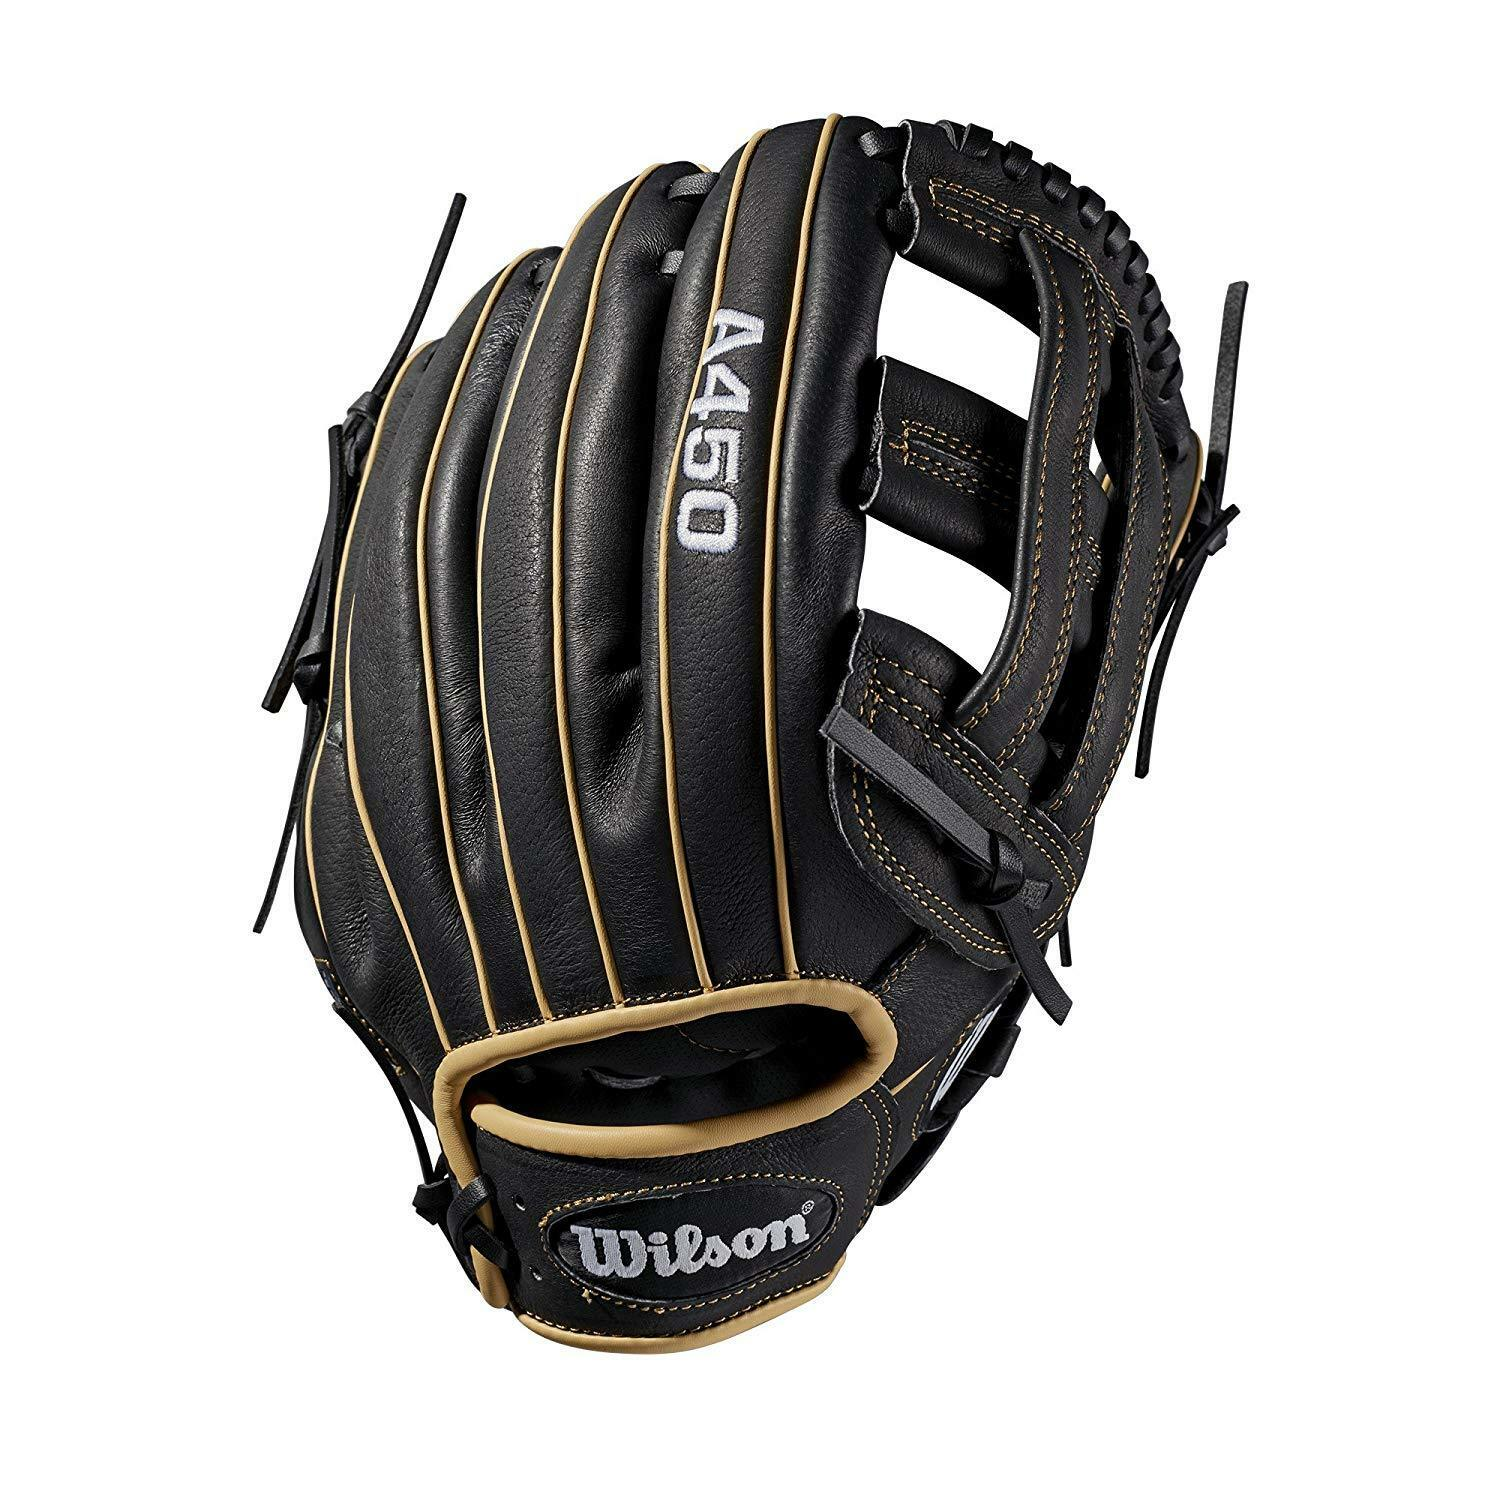 Wilson Sporting Goods 2019 2019 Goods A450 Baseball Glove Series 12